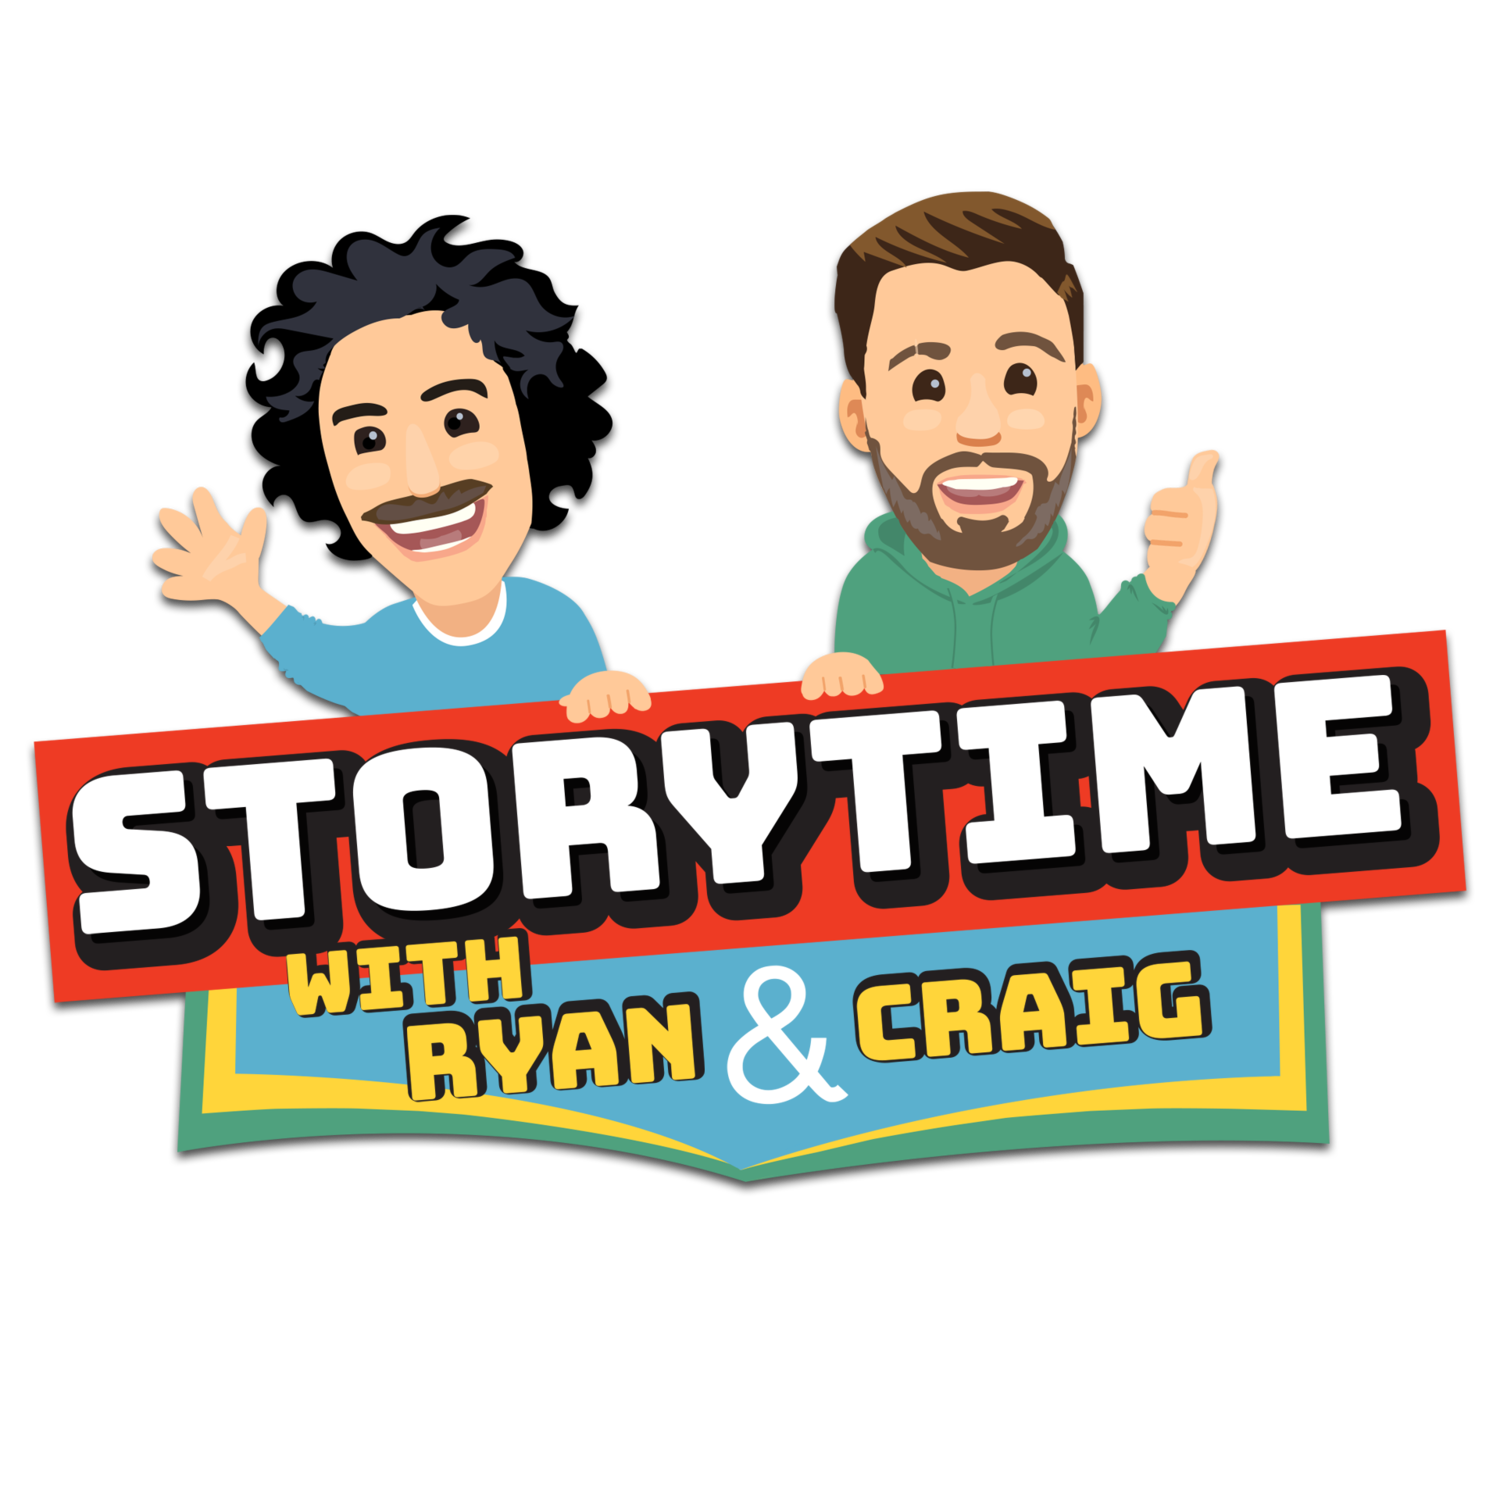 STORYTIME WITH RYAN & CRAIG